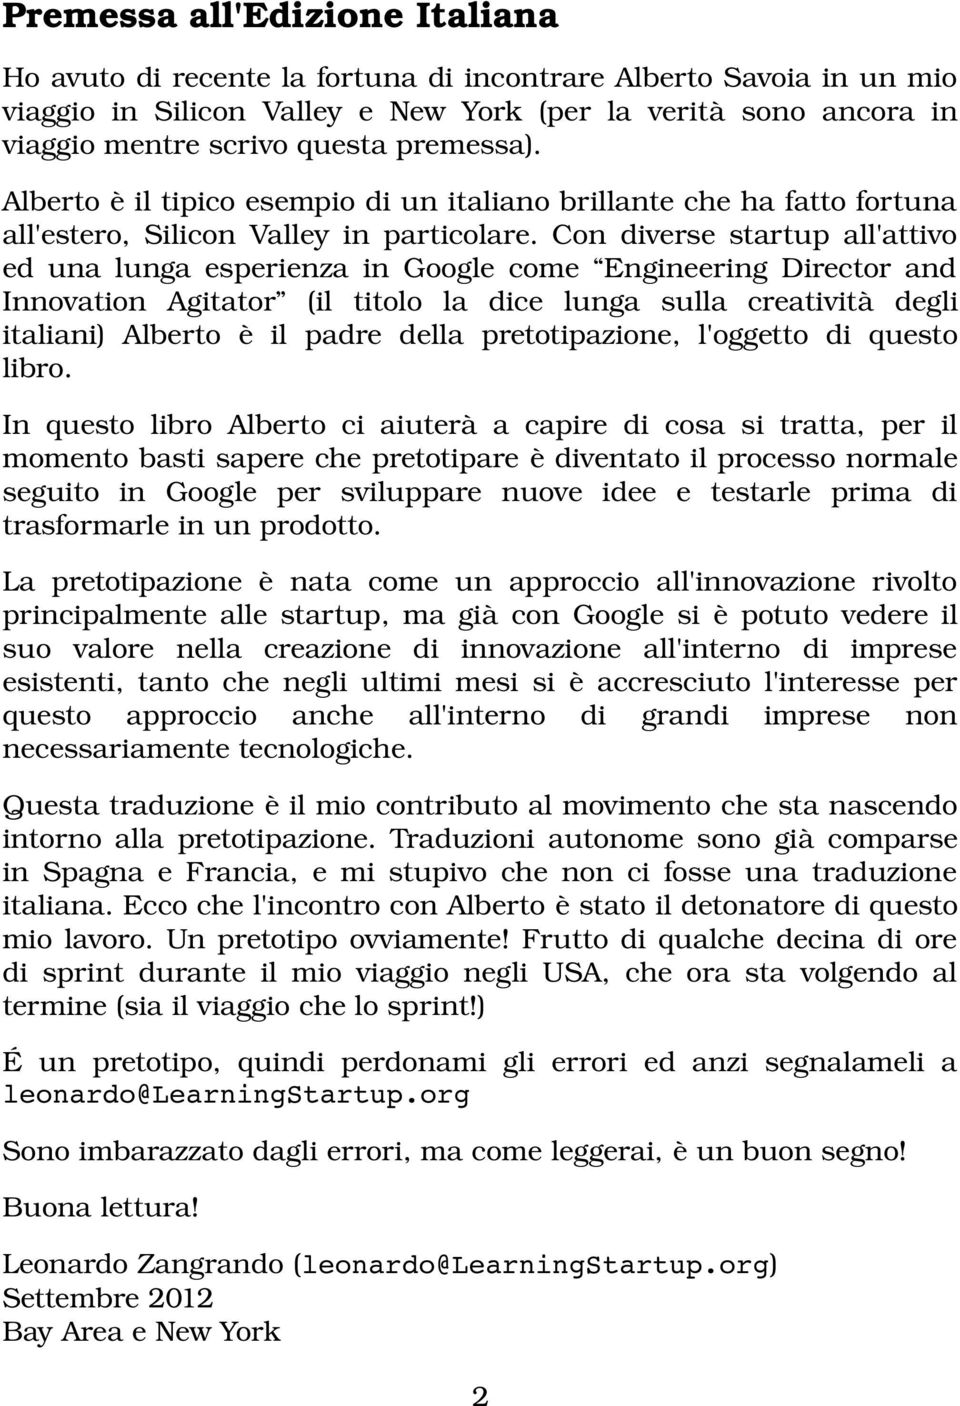 Con diverse startup all'attivo ed una lunga esperienza in Google come Engineering Director and Innovation Agitator (il titolo la dice lunga sulla creatività degli italiani) Alberto è il padre della